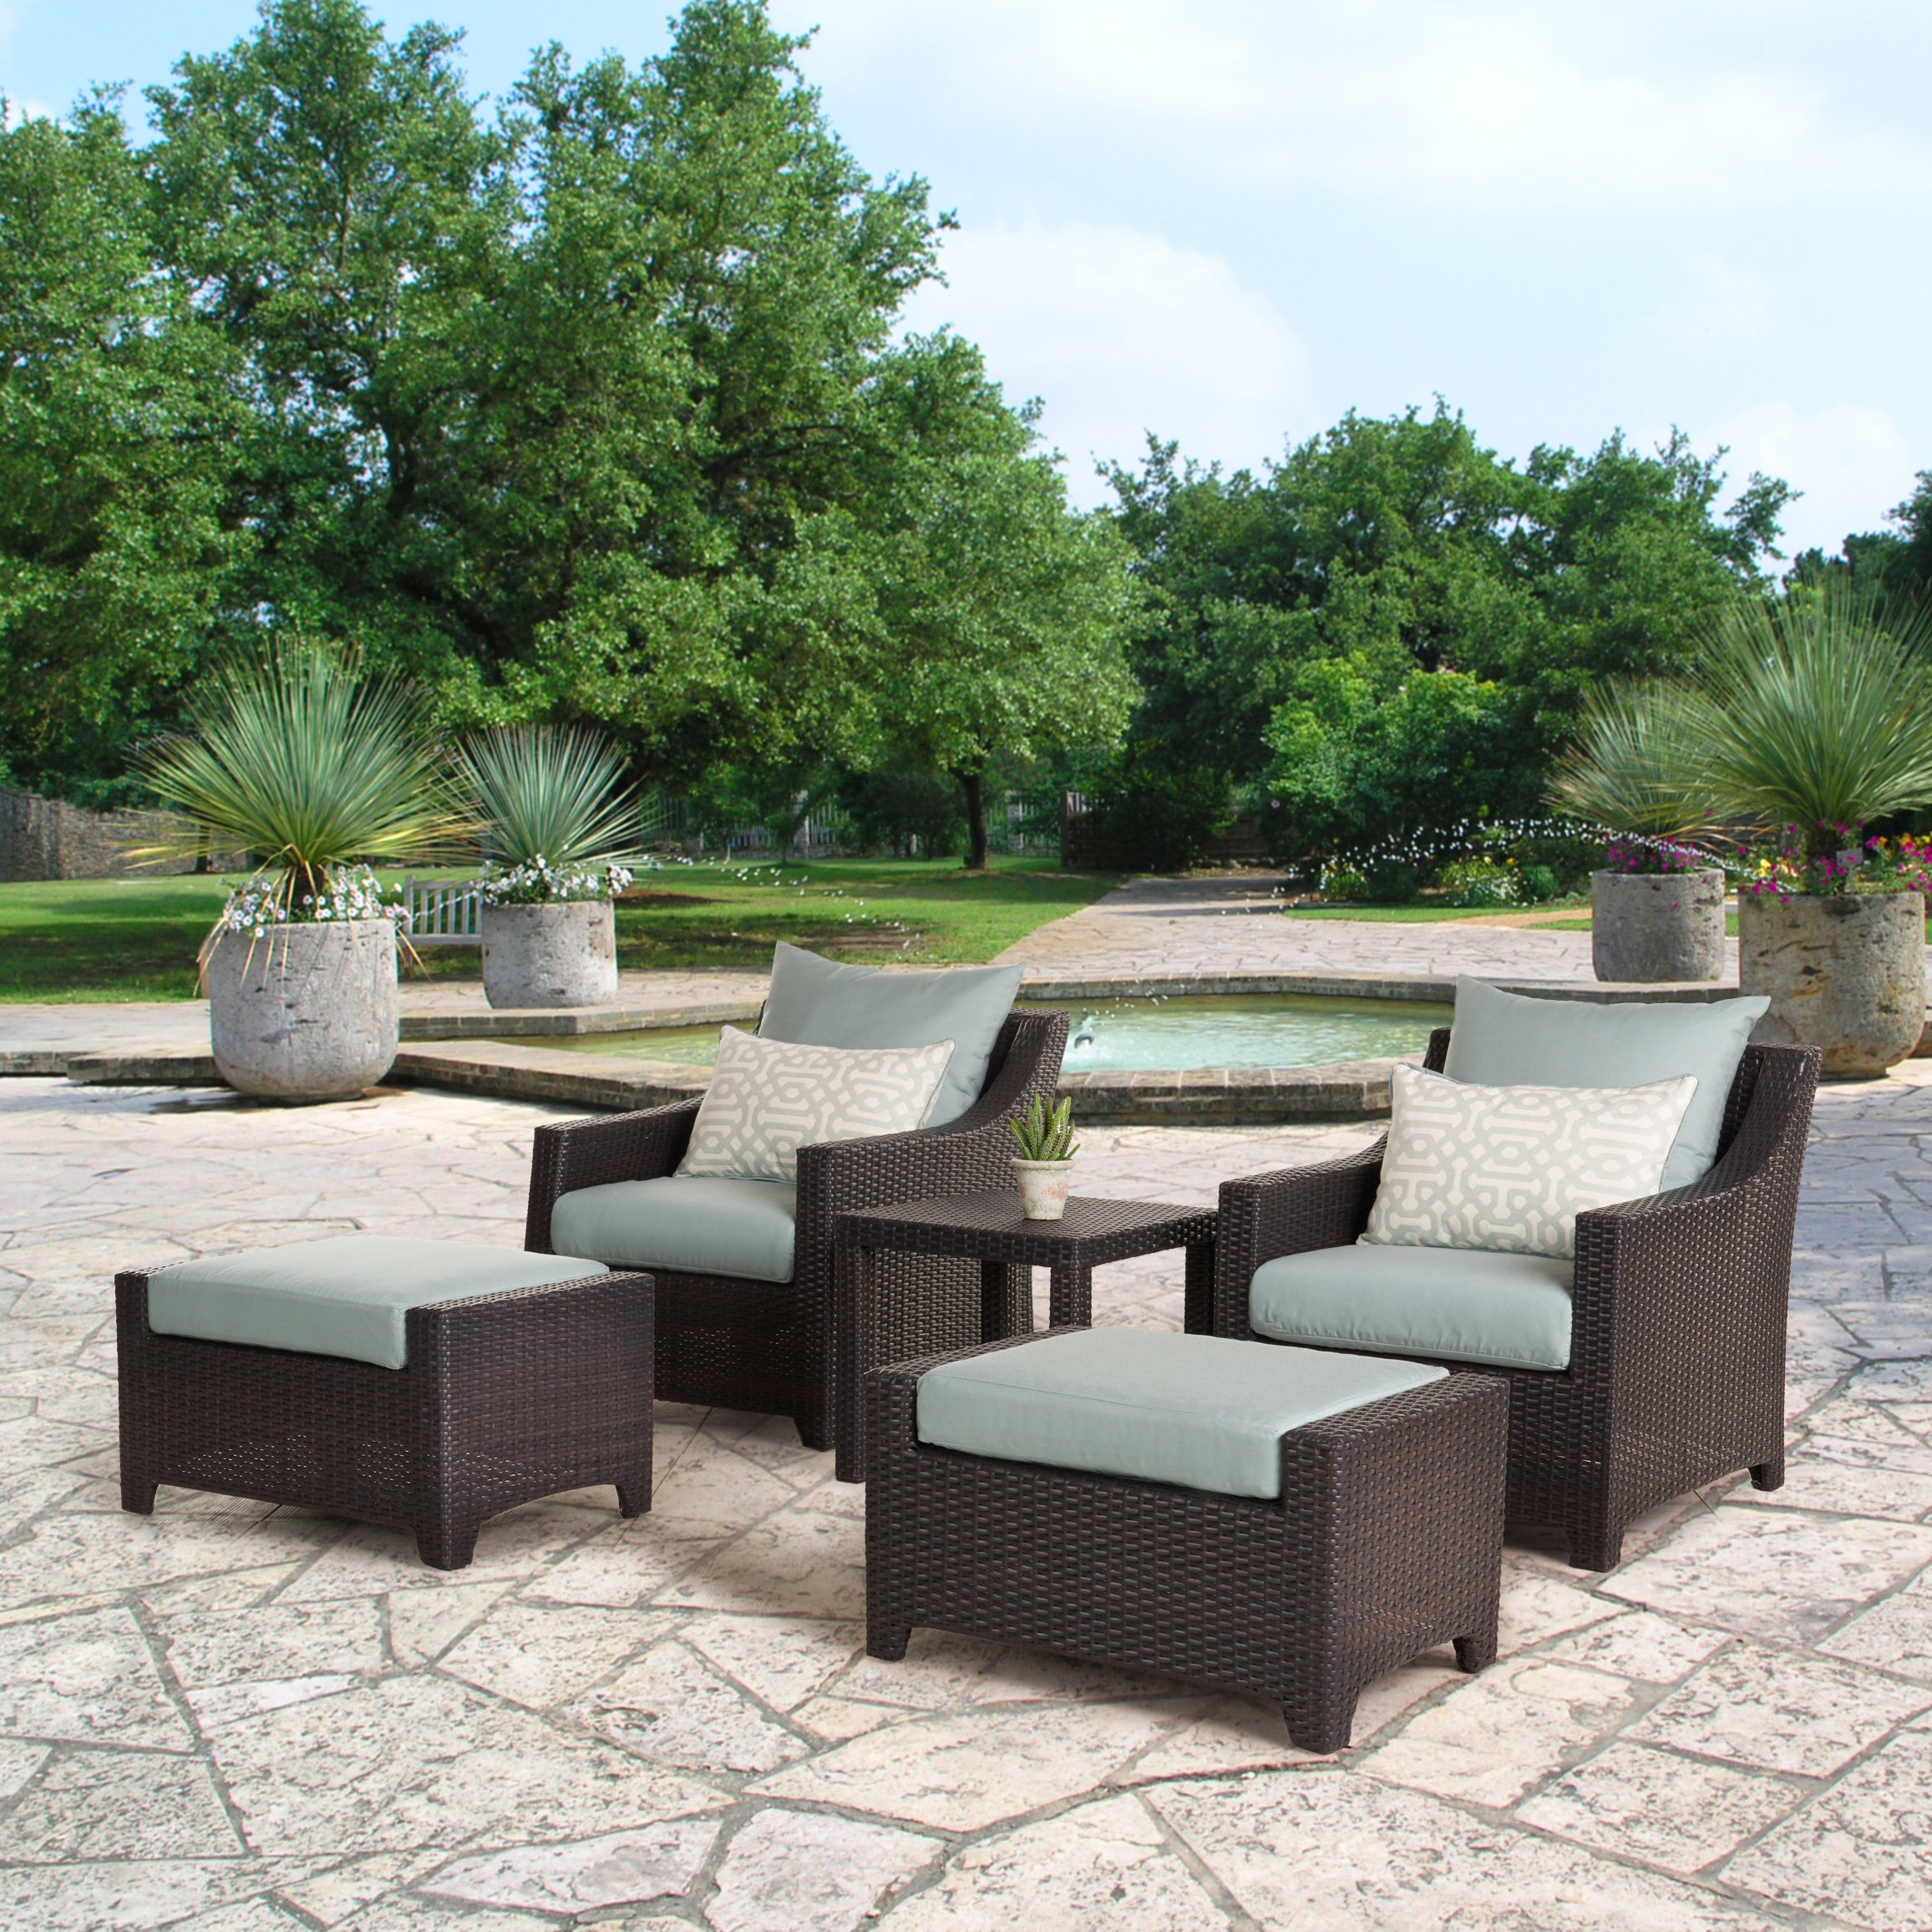 Northridge 5 Piece Conversation Set With Cushions With Regard To Best And Newest Northridge Patio Sofas With Sunbrella Cushions (Gallery 19 of 20)